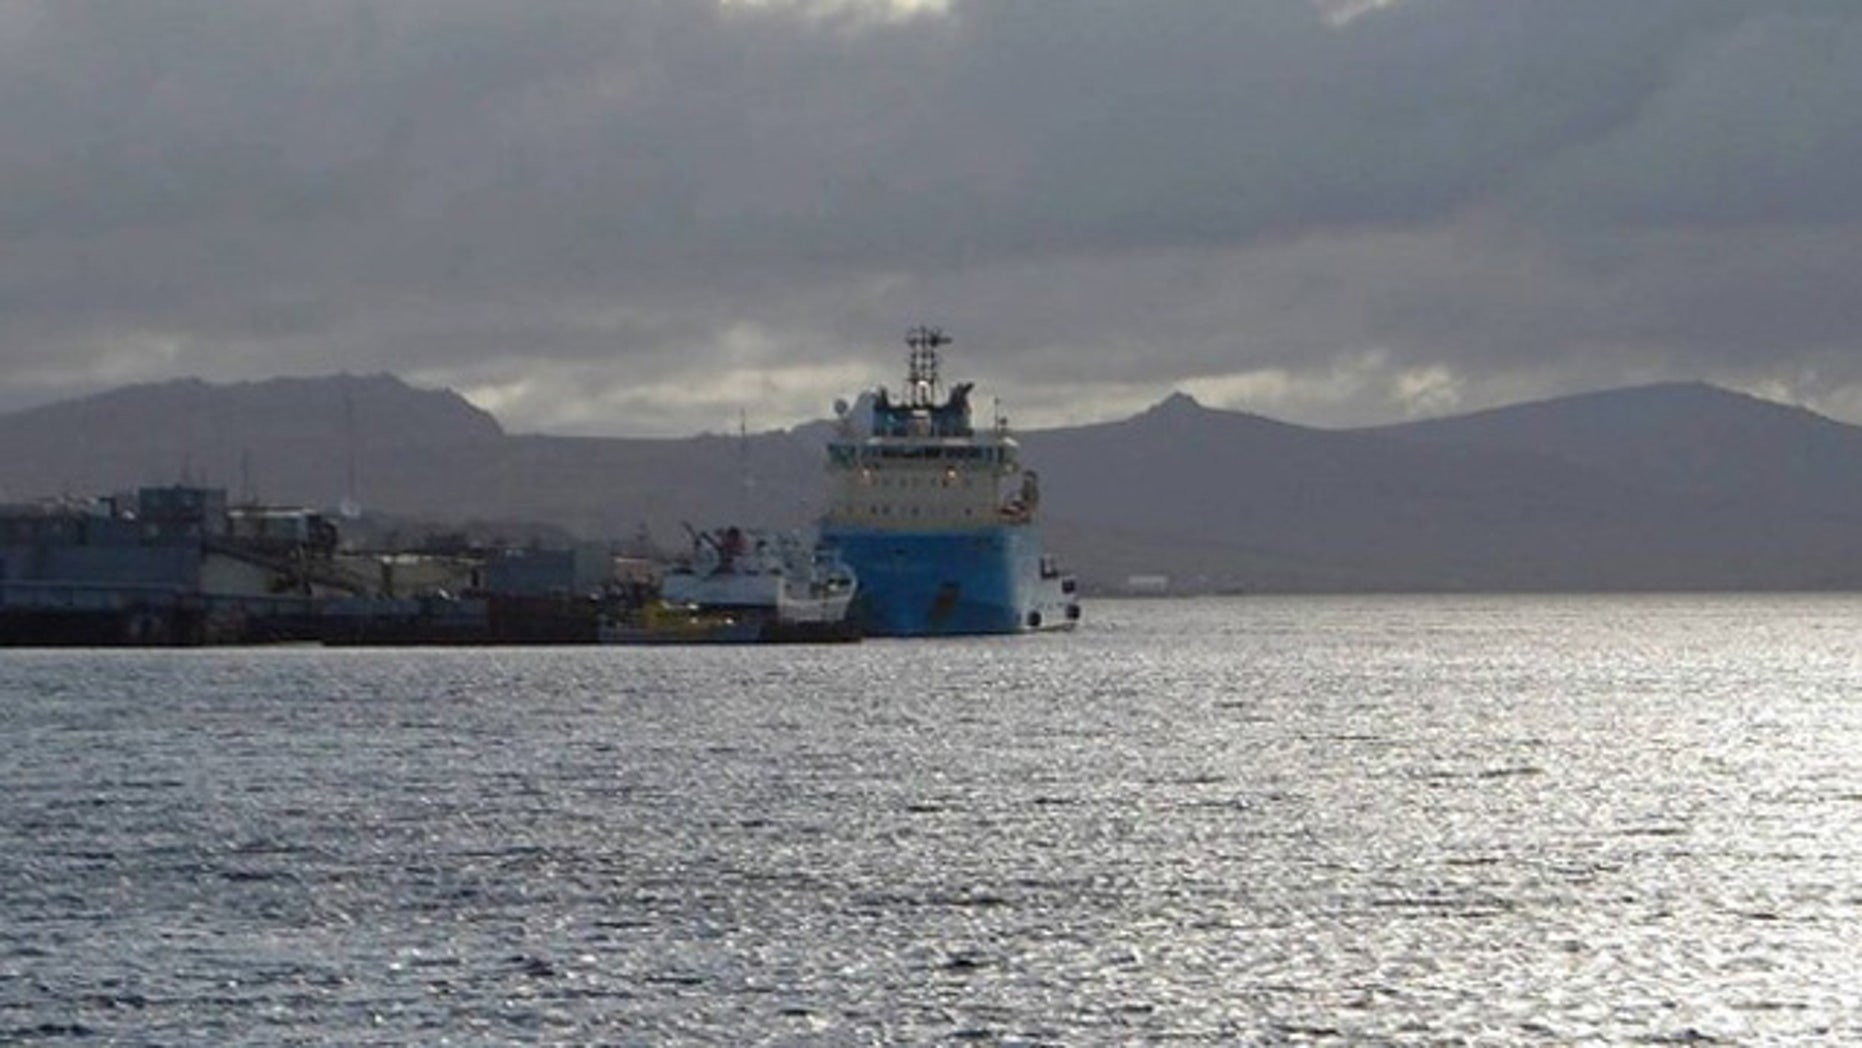 A Maersk supply boat is seen preparing to sail to a drilling rig offshore from the Falkland Islands in Port Stanley Feb. 26. (Reuters Photo)